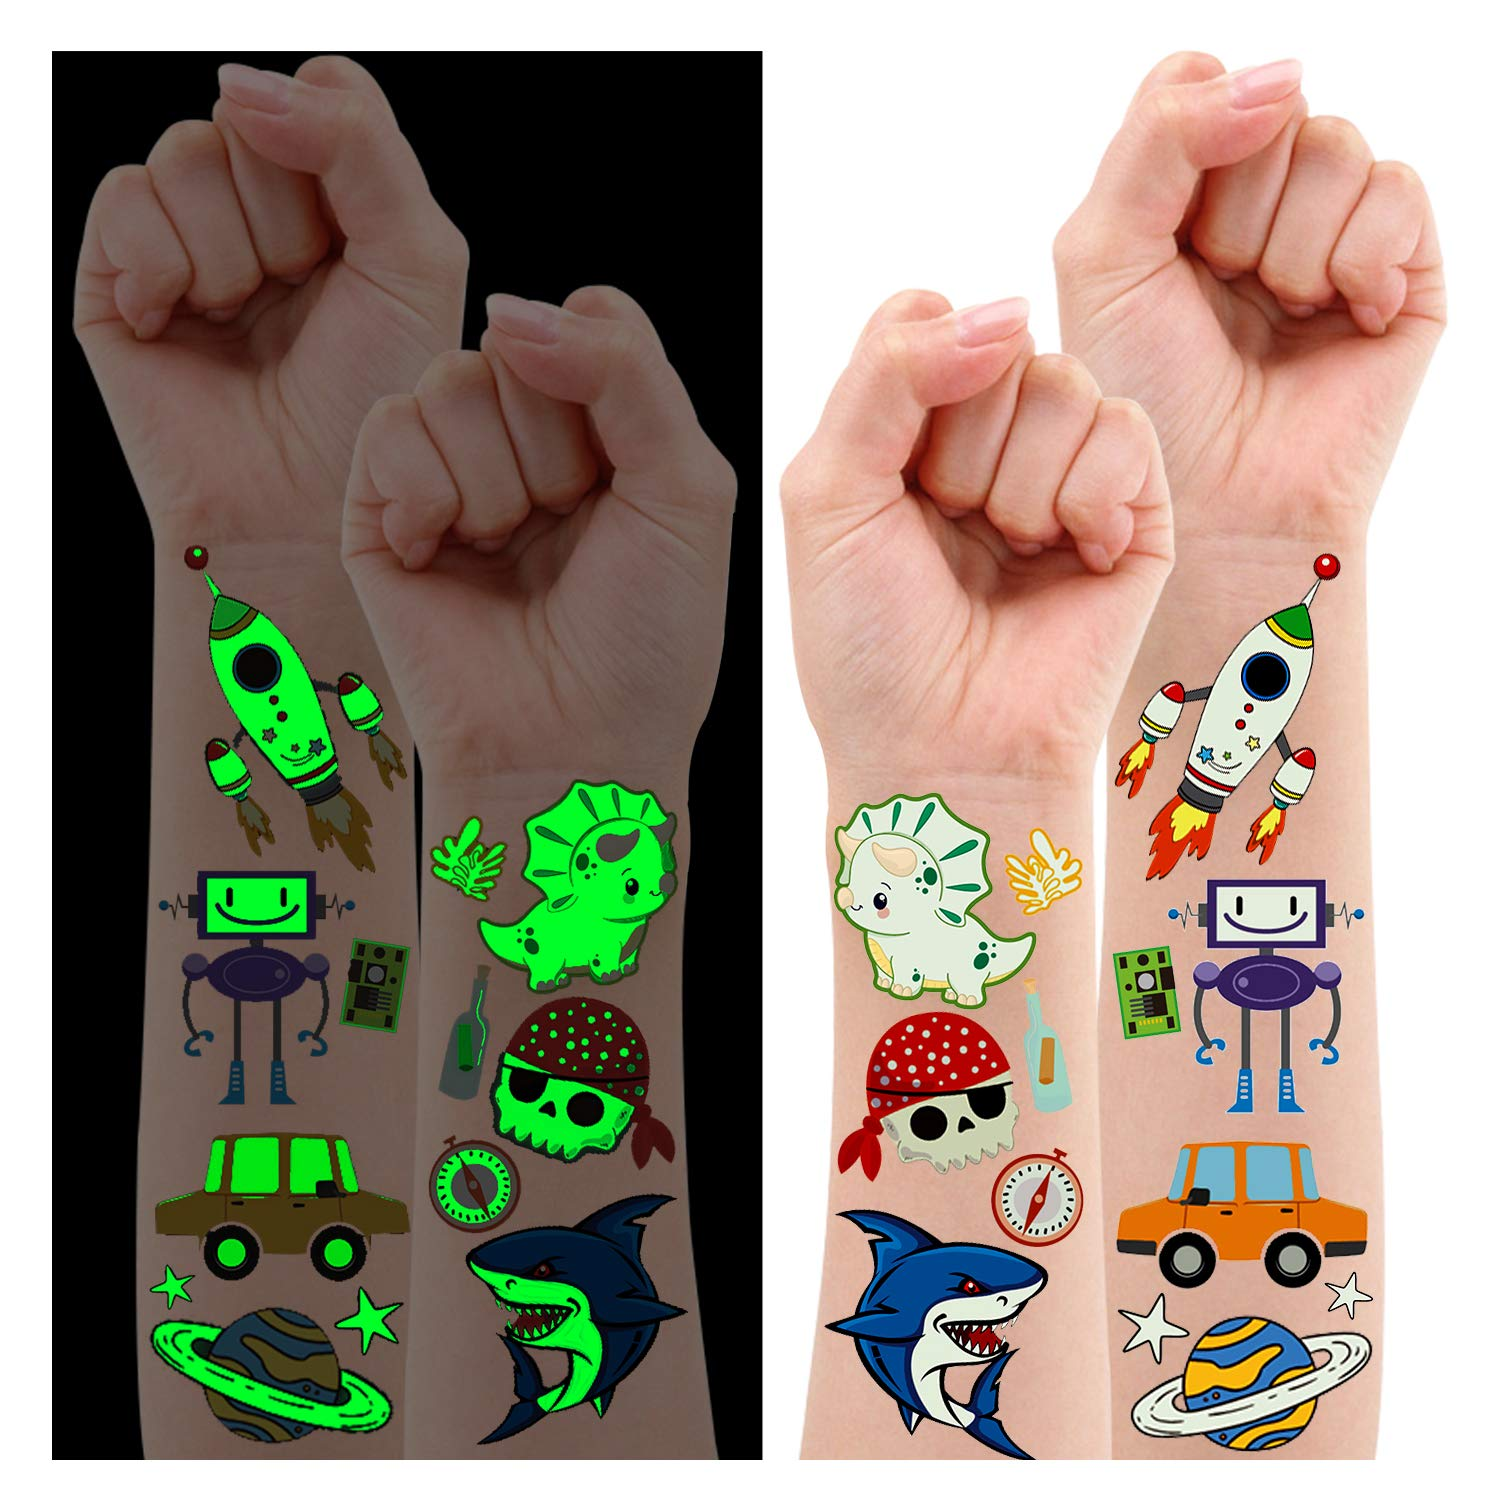 Partywind 145 Courier shipping free Popular products Styles - Luminous for Tattoos Temporary Kids Boys